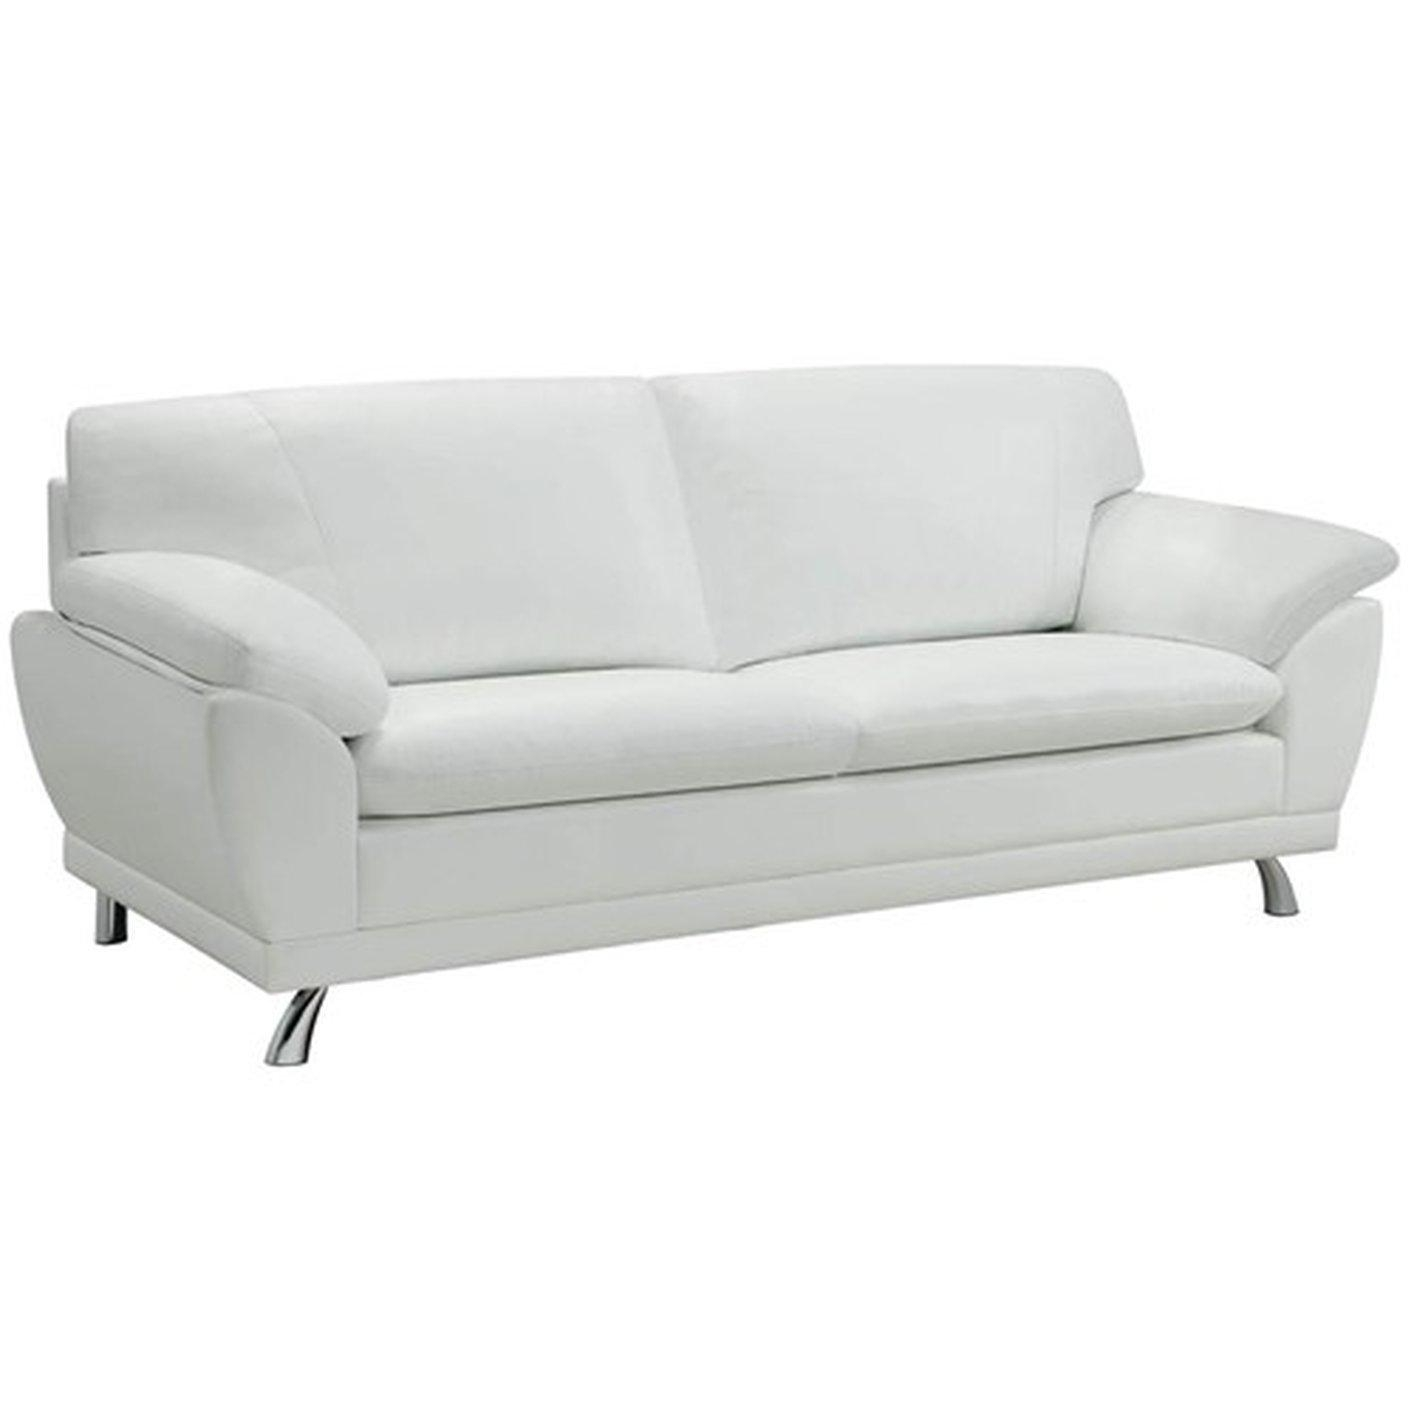 Robyn White Leather Sofa – Steal A Sofa Furniture Outlet Los Regarding White Leather Sofas (View 11 of 20)